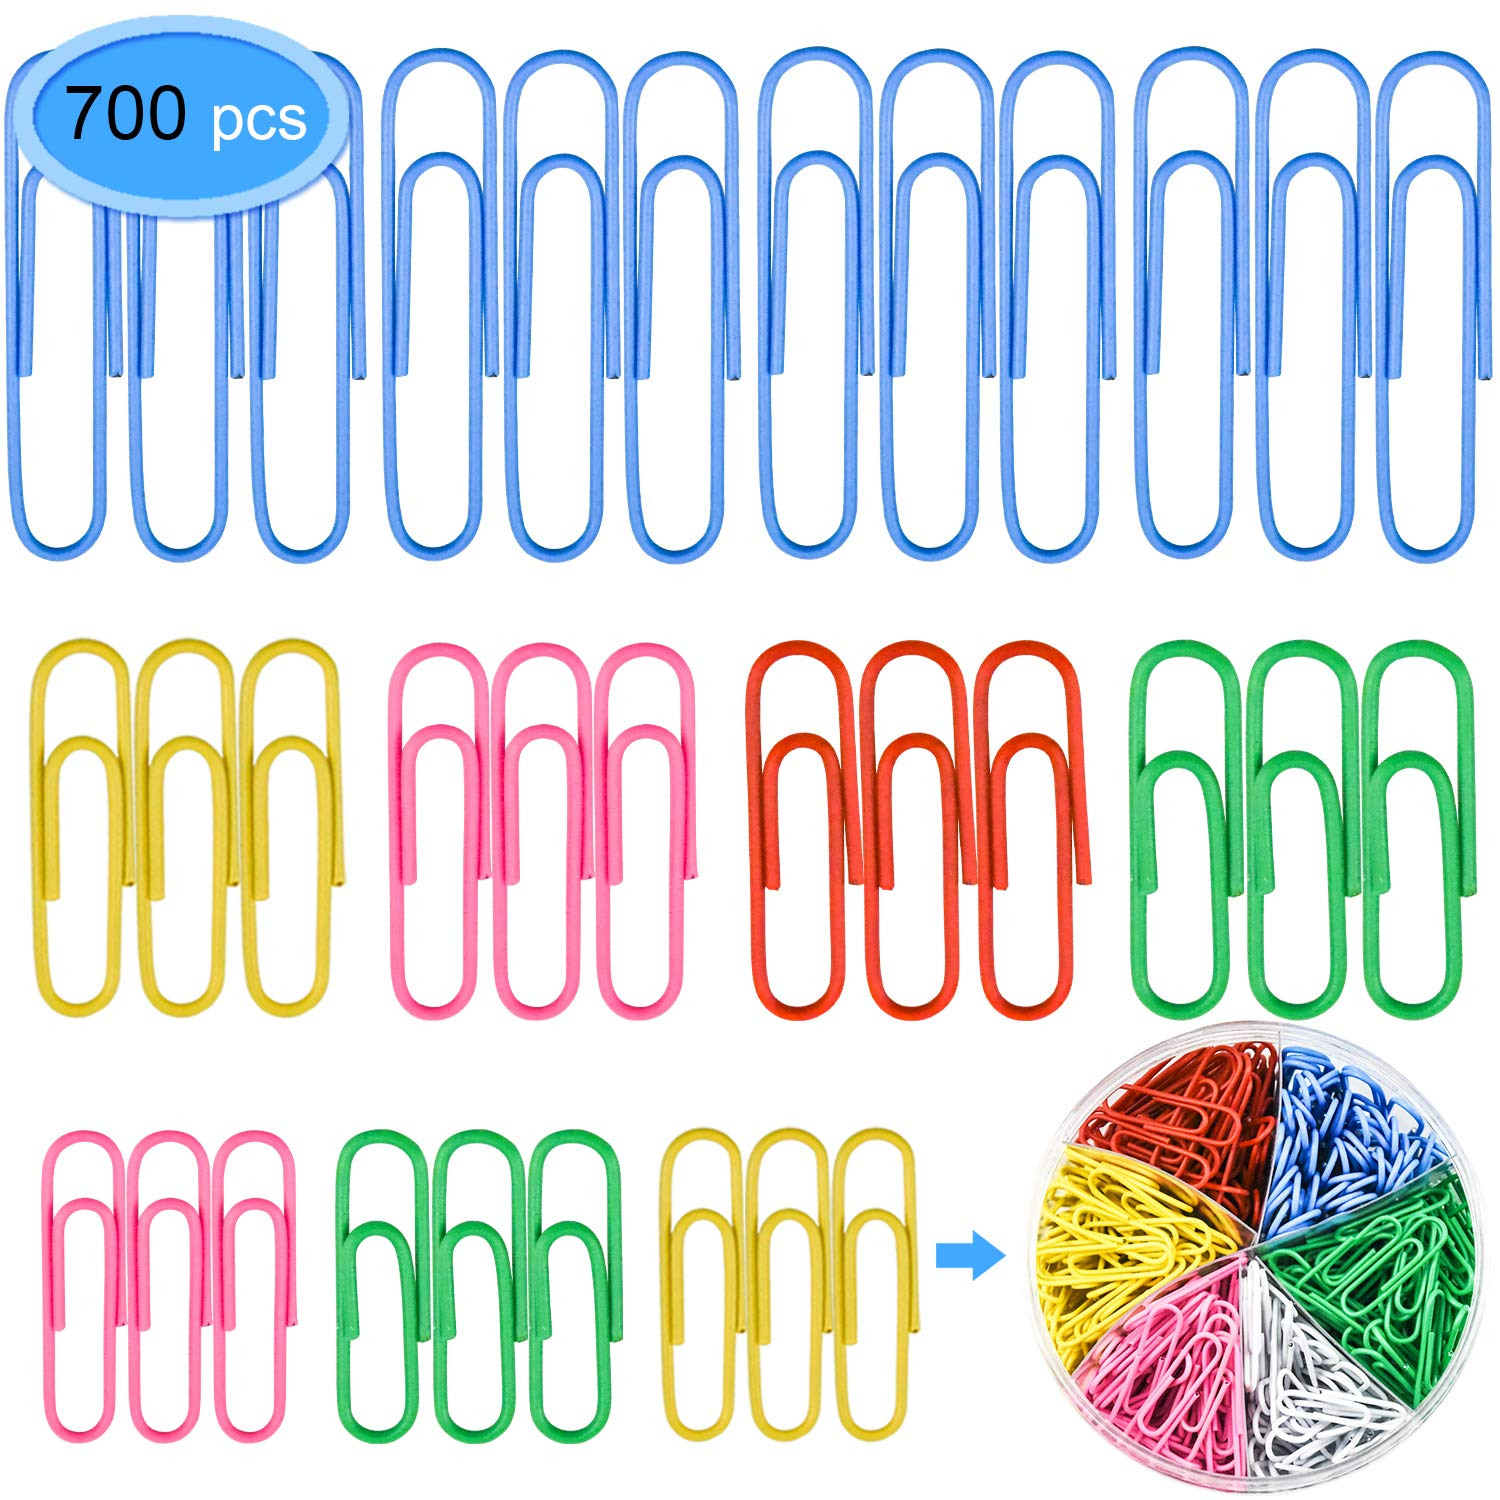 Colored Paper Clips 700 Pieces Colors EAONE Vinyl Coated Metal Paper Clips 50mm 33mm 28mm Document Paper Organizer Clips for Office School Home